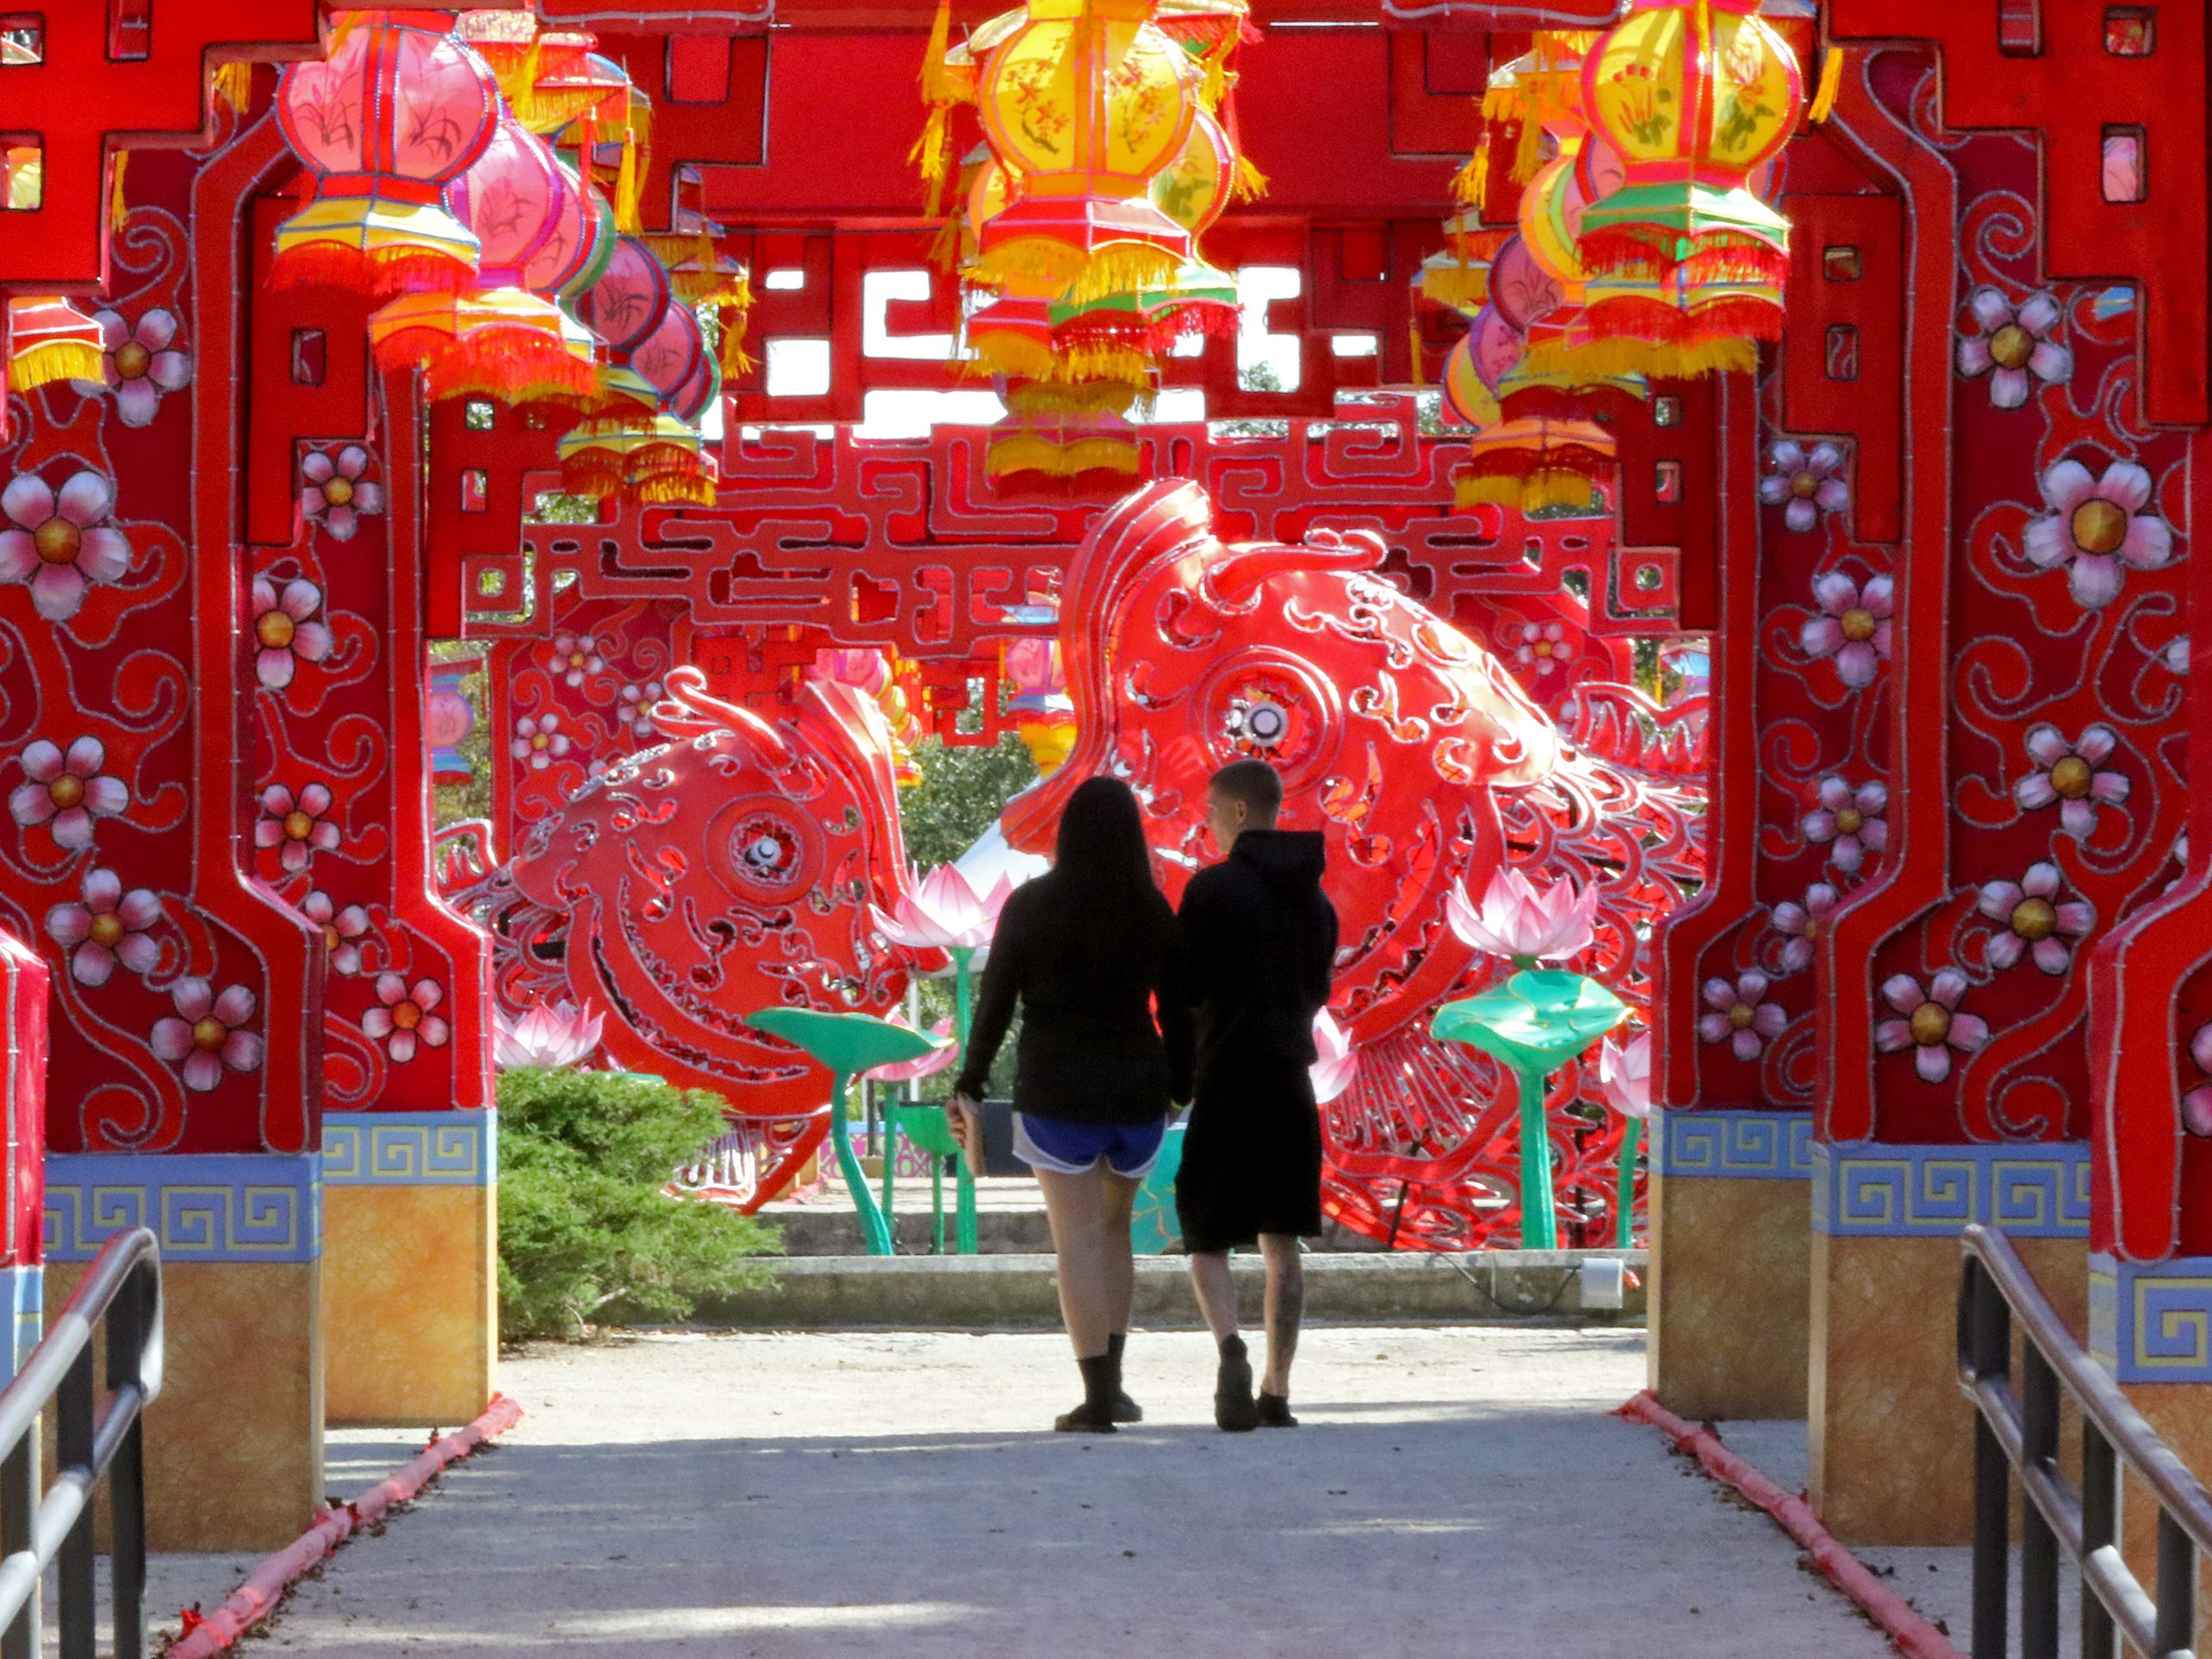 A couple walks through the main entrance to the China Lights display being assembled at the Boerner Botanical Gardens that is set to open Sept. 21. Full information on hours, dates and tickets can be found at www.chinalights.org.